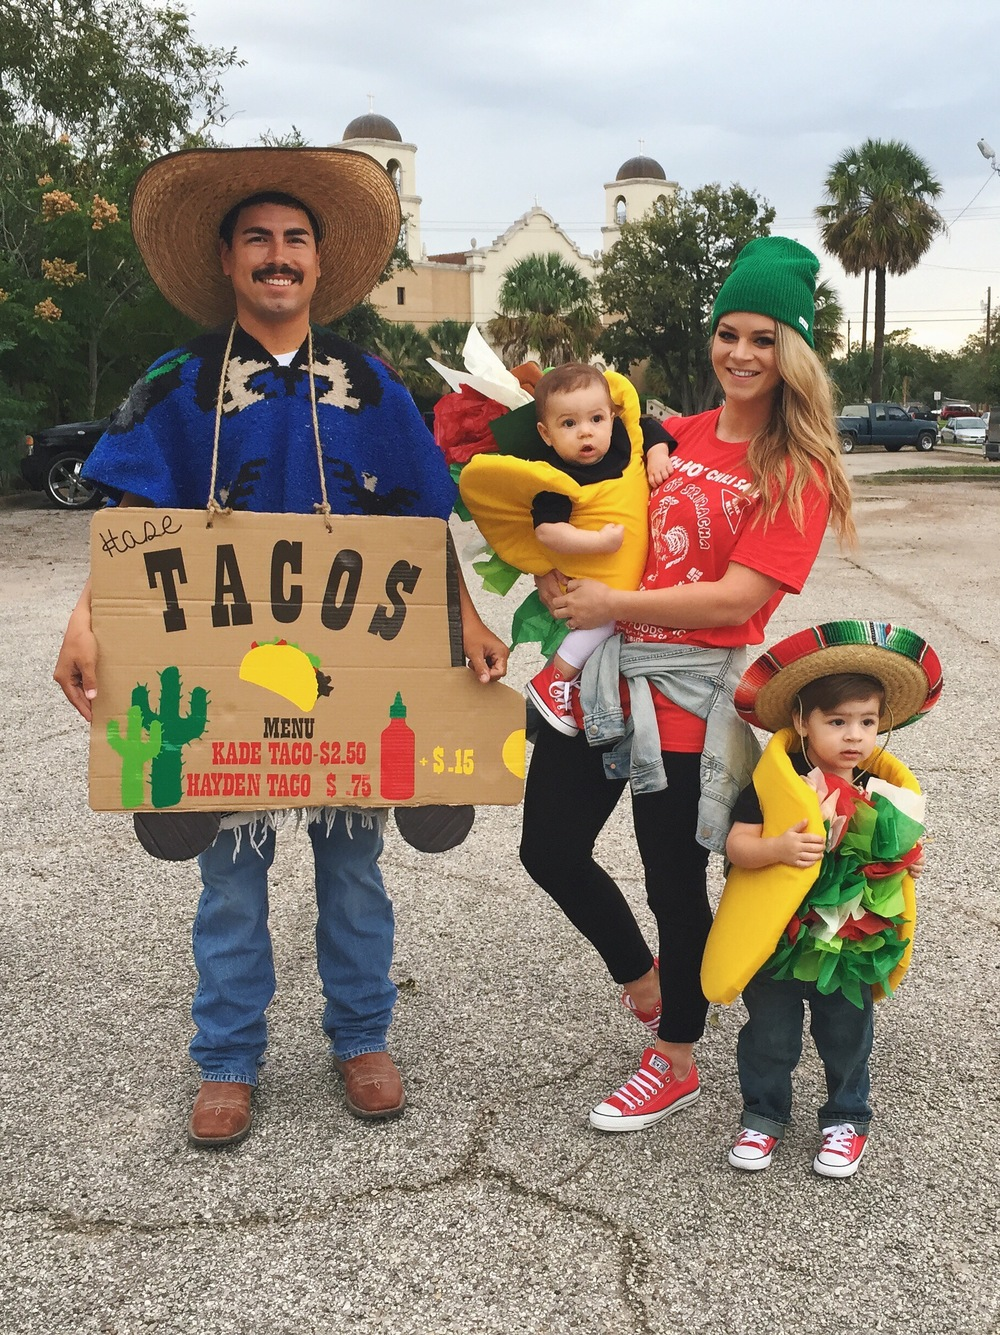 taco family halloween costume food truck costume halloween couples costumes diy